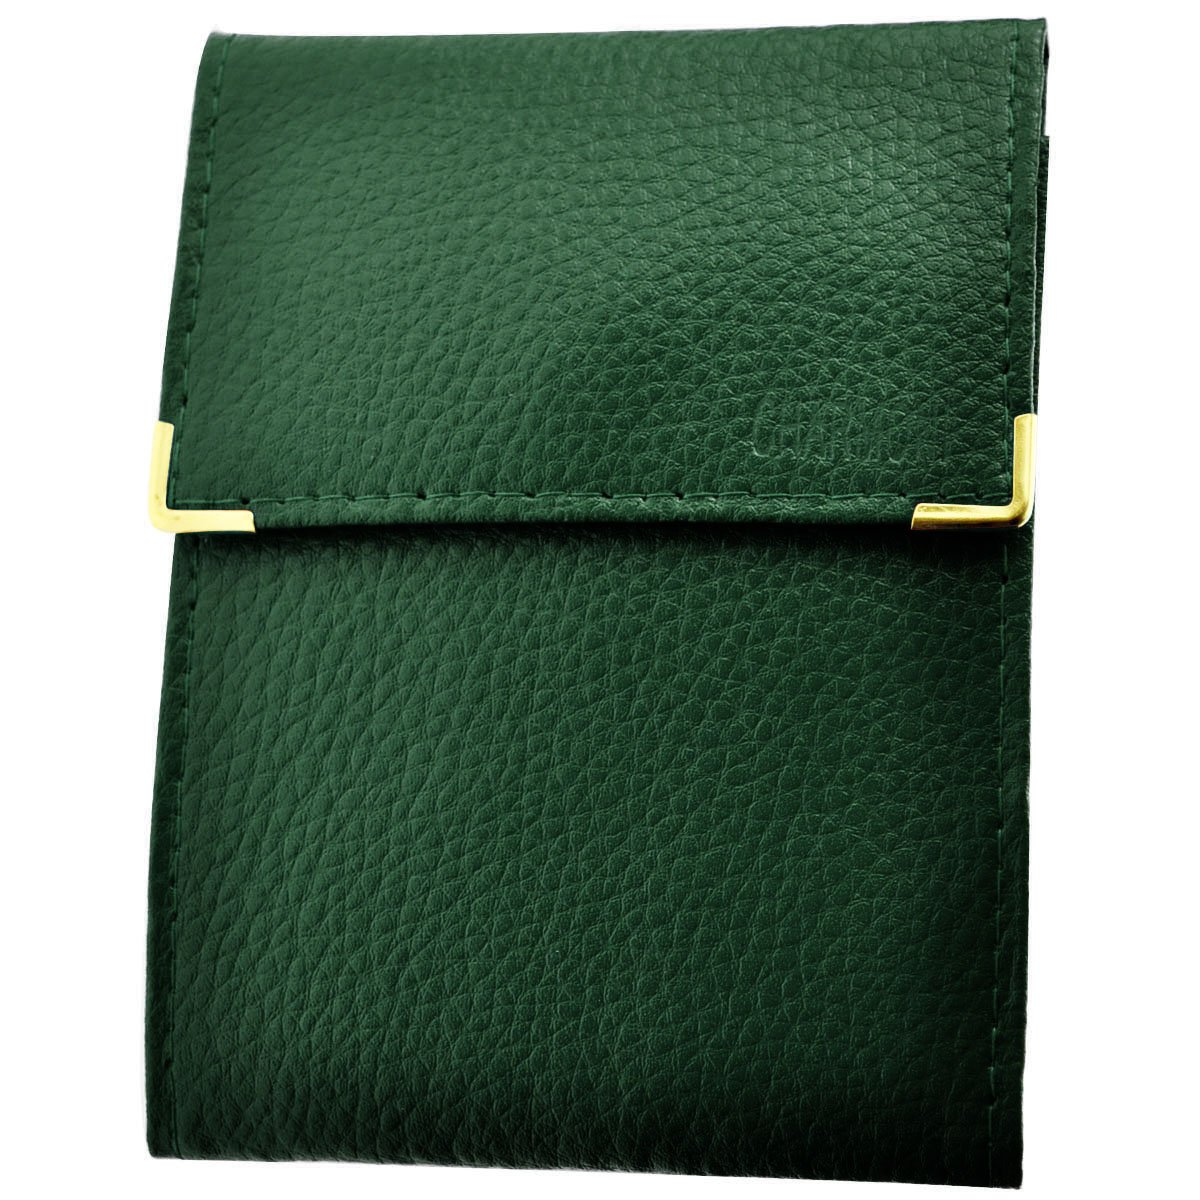 Can Hold Bank Cards Folding Long 3/Parts Charmoni/® Unisex Chequebook Holder Mila Saffiano leather